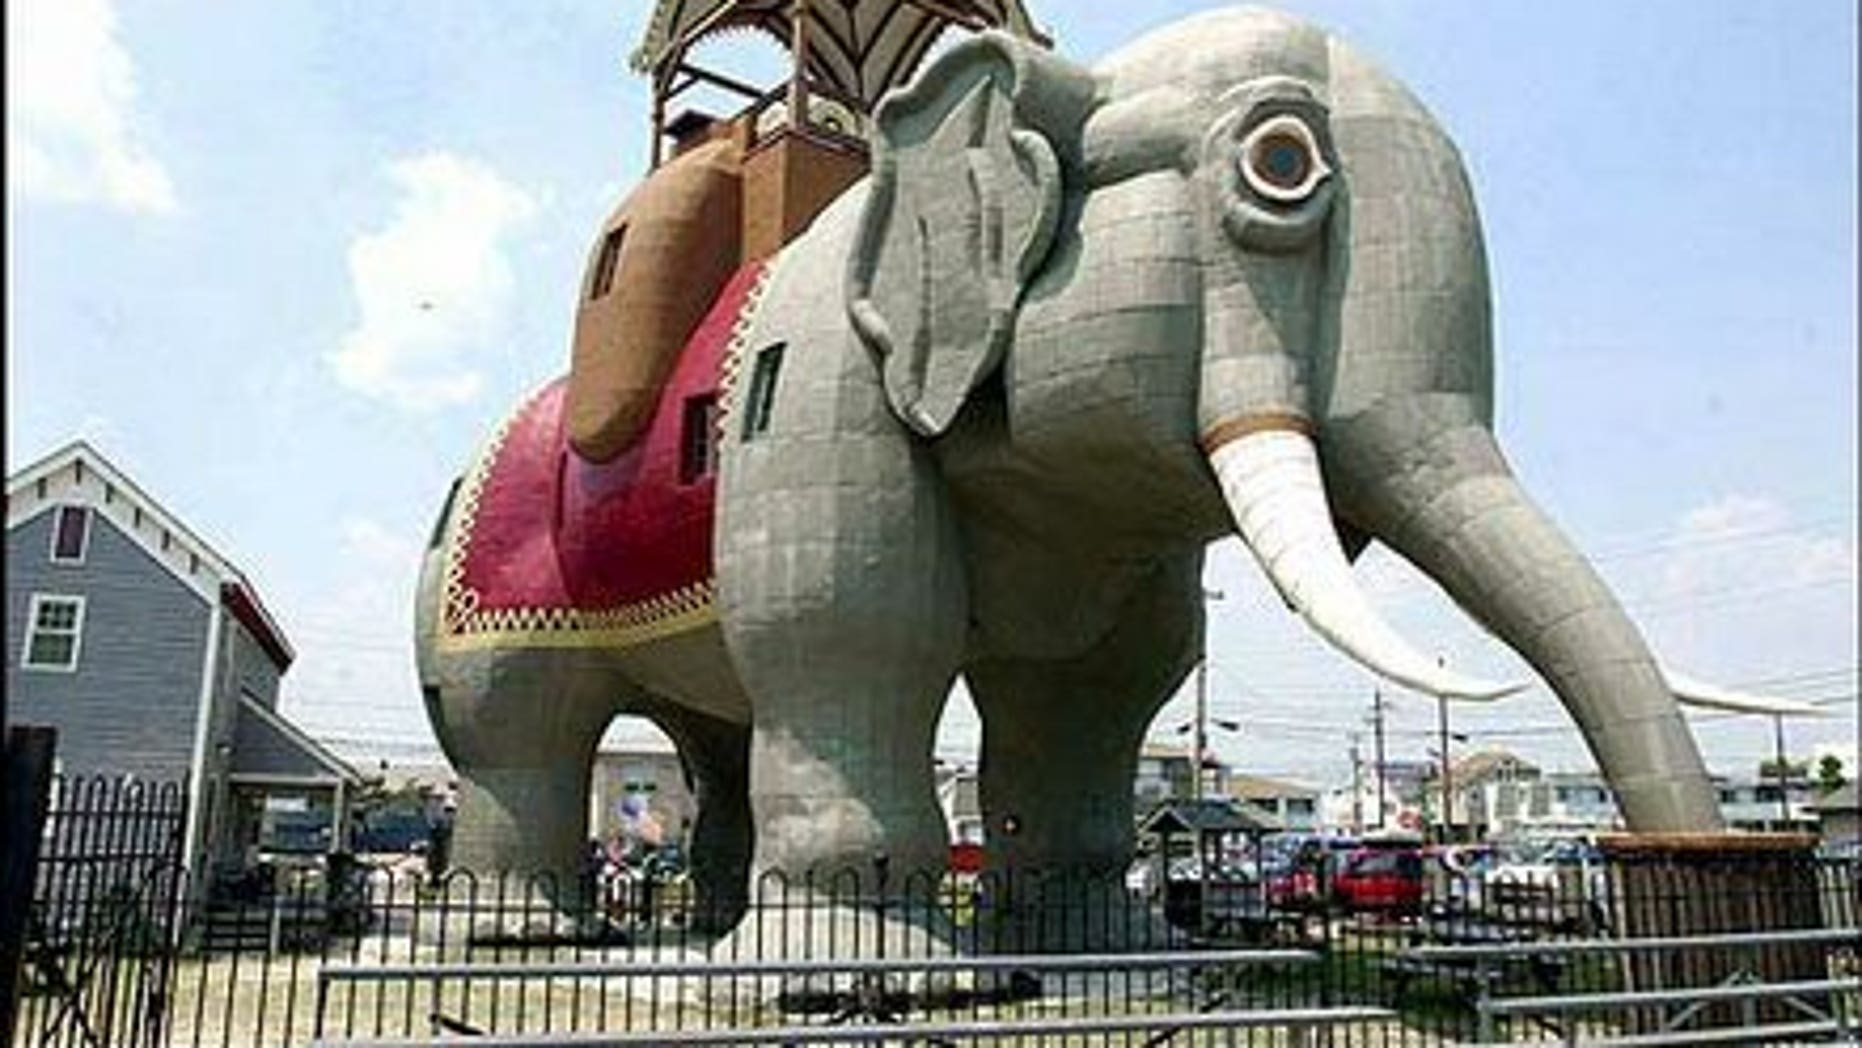 New Jersey shore attraction, Lucy the Elephant loacted in Margate, N.J.